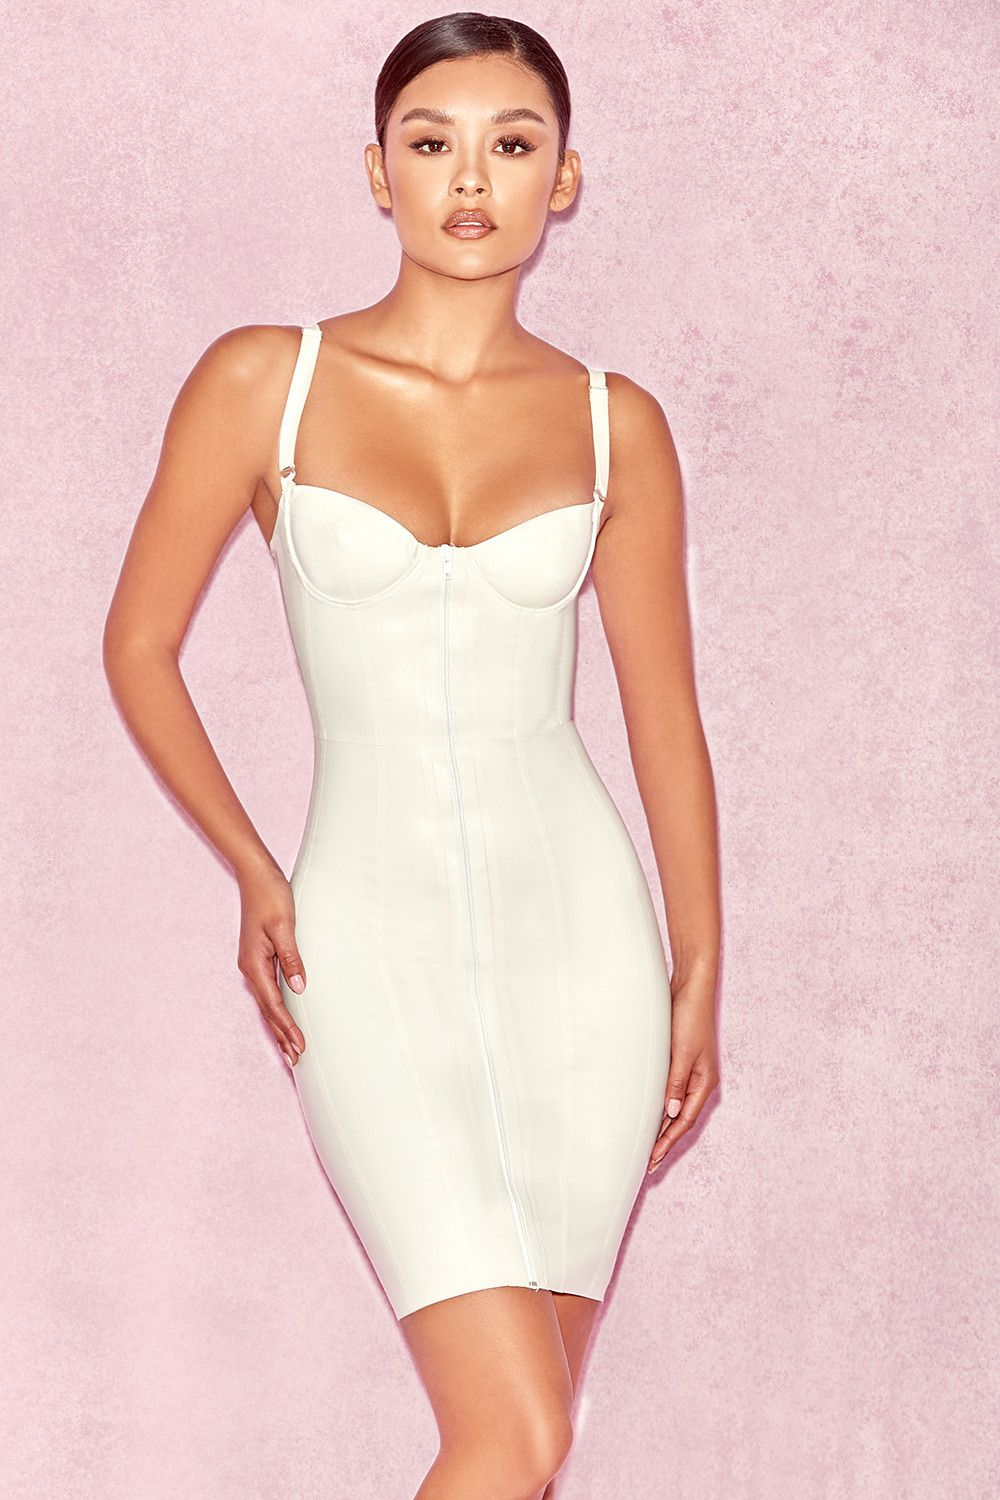 7716210cd3 Clothing : Bodycon Dresses : 'Lexii' Off White Bustier Latex Dress ...